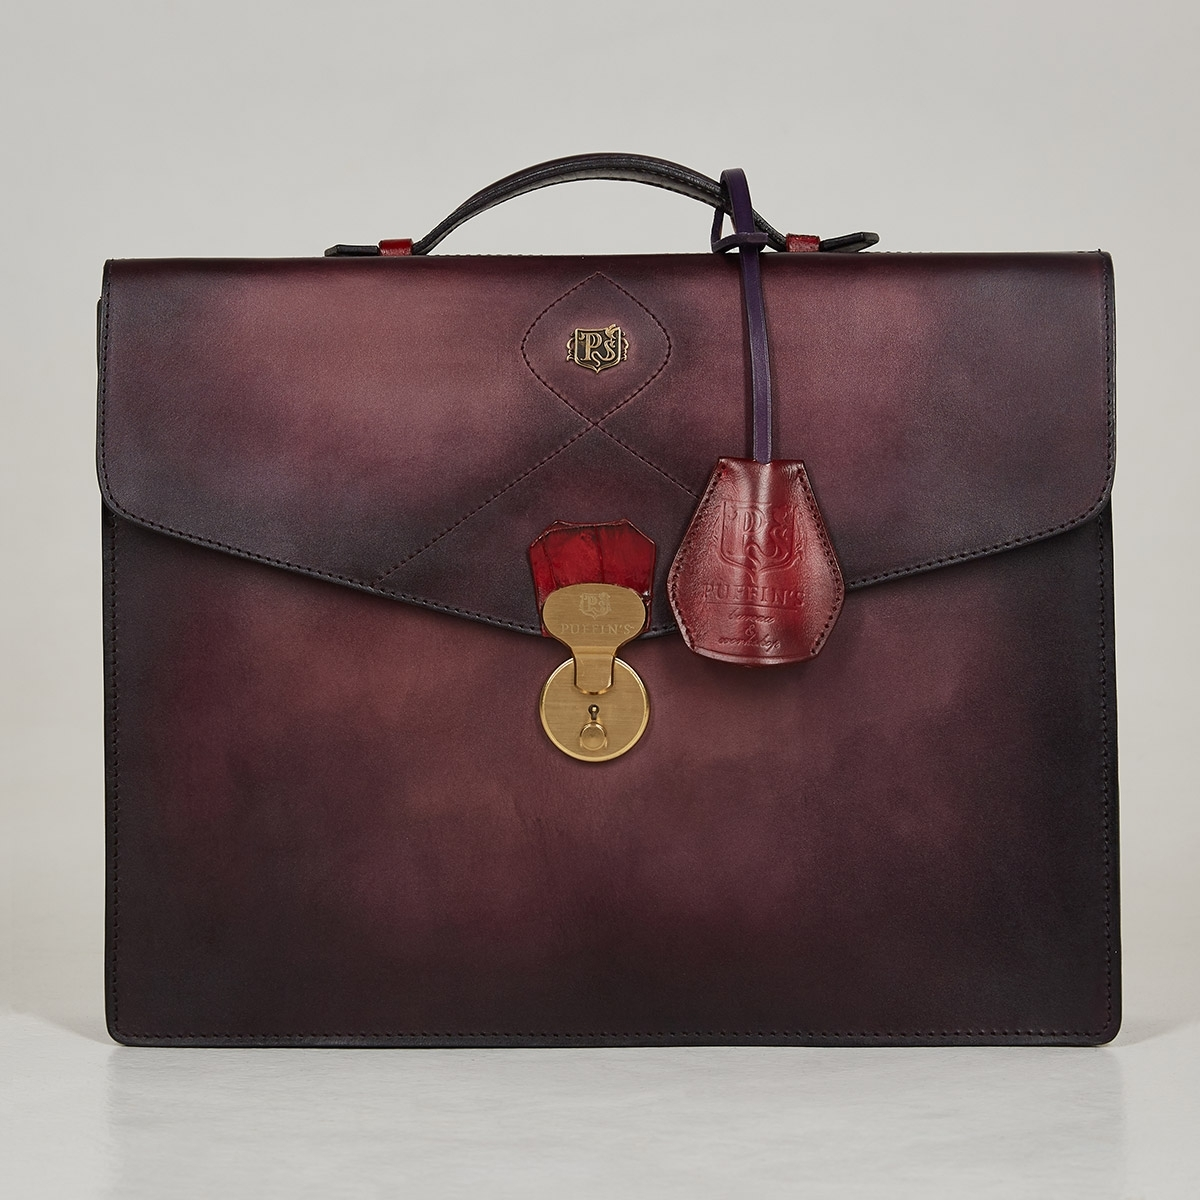 Briefcase ELEGANCE red currant & plum wine